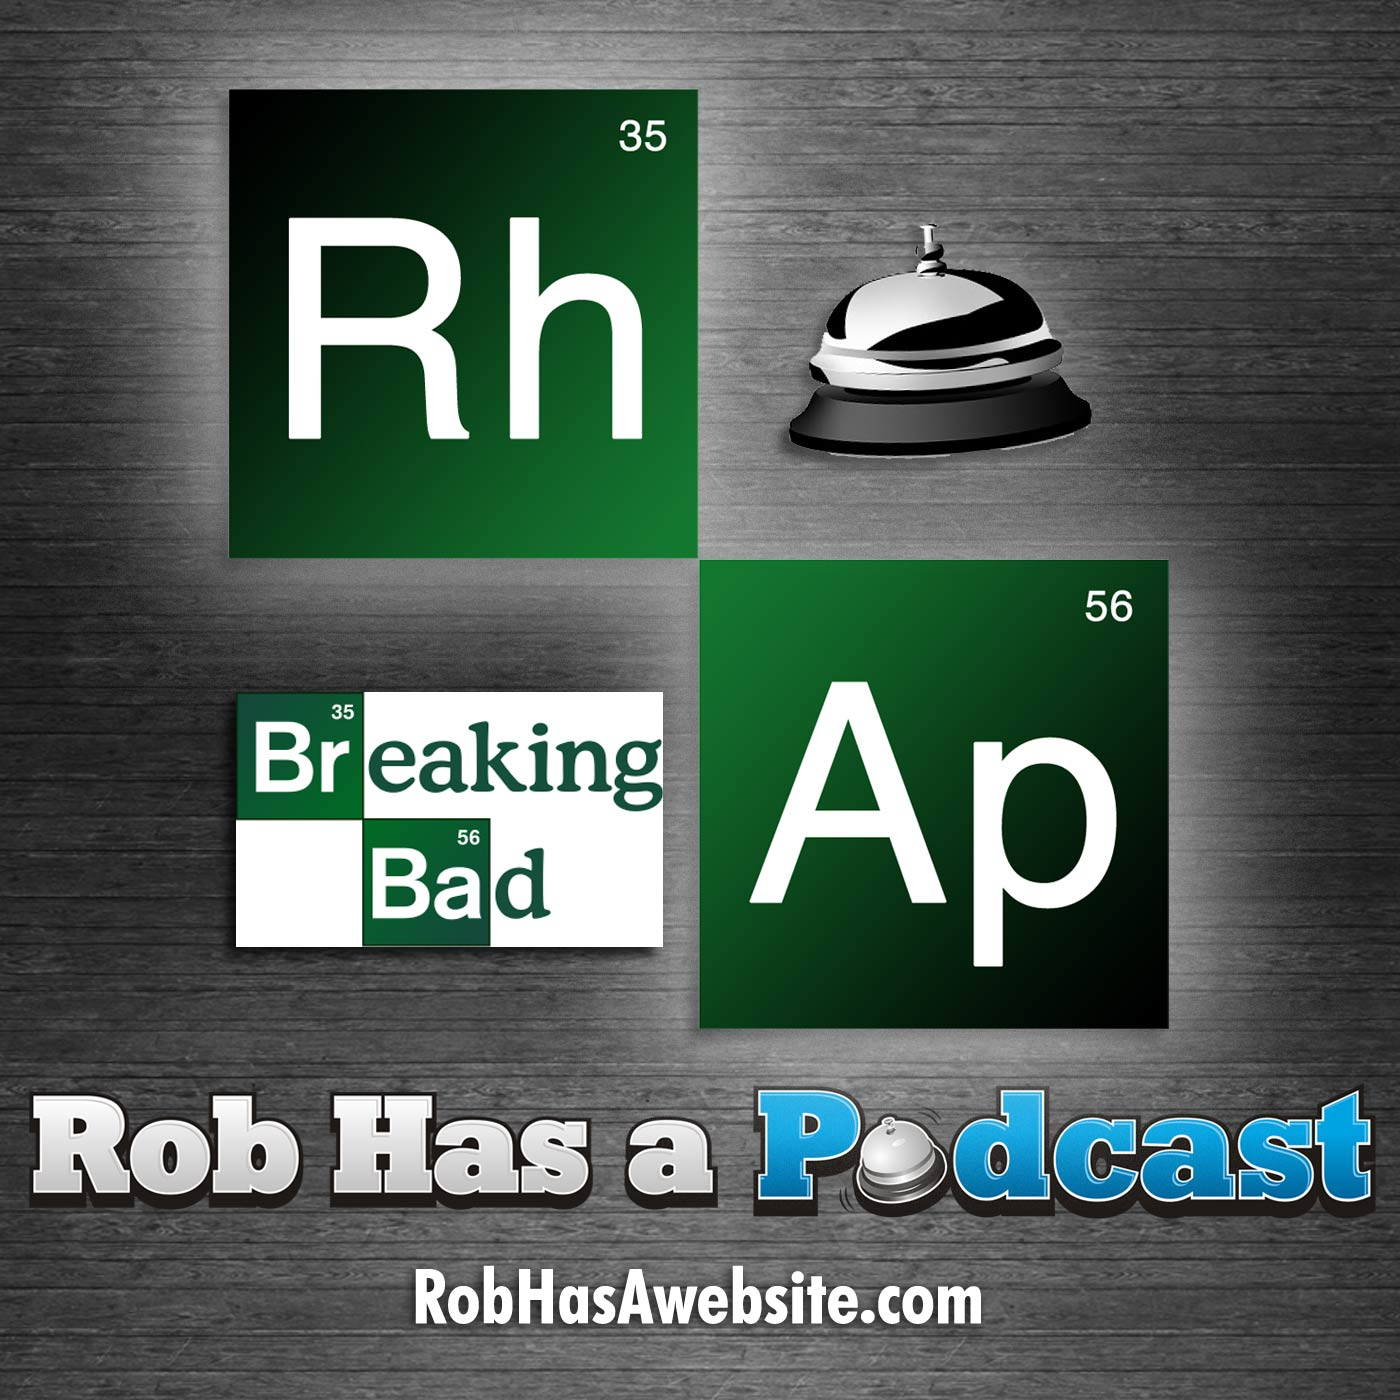 Breaking RHAP – A Breaking Bad Podcast from Rob Has a Podcast